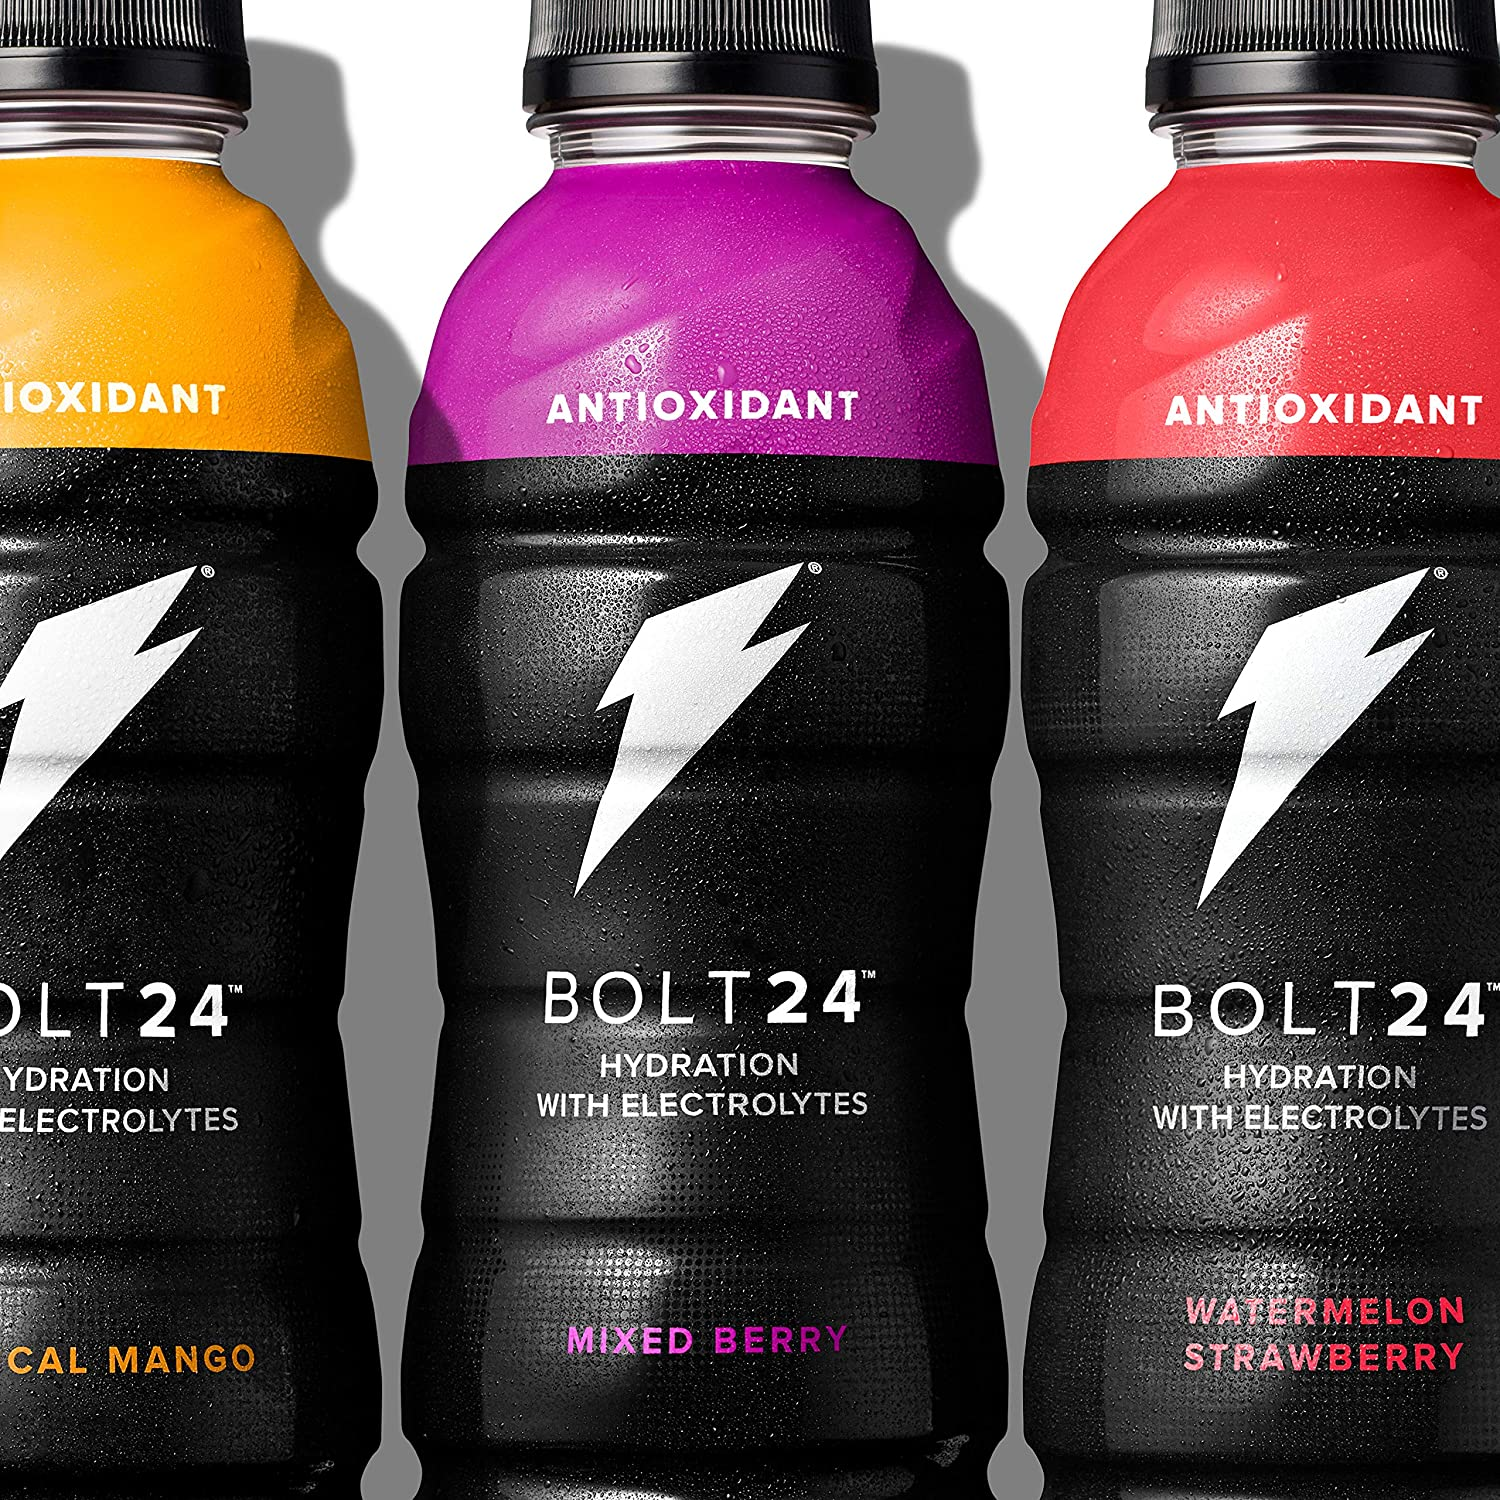 Gatorade BOLT24, Hydration with Antioxidants and Electrolytes, 3 Flavor  Variety Pack, 16 9oz